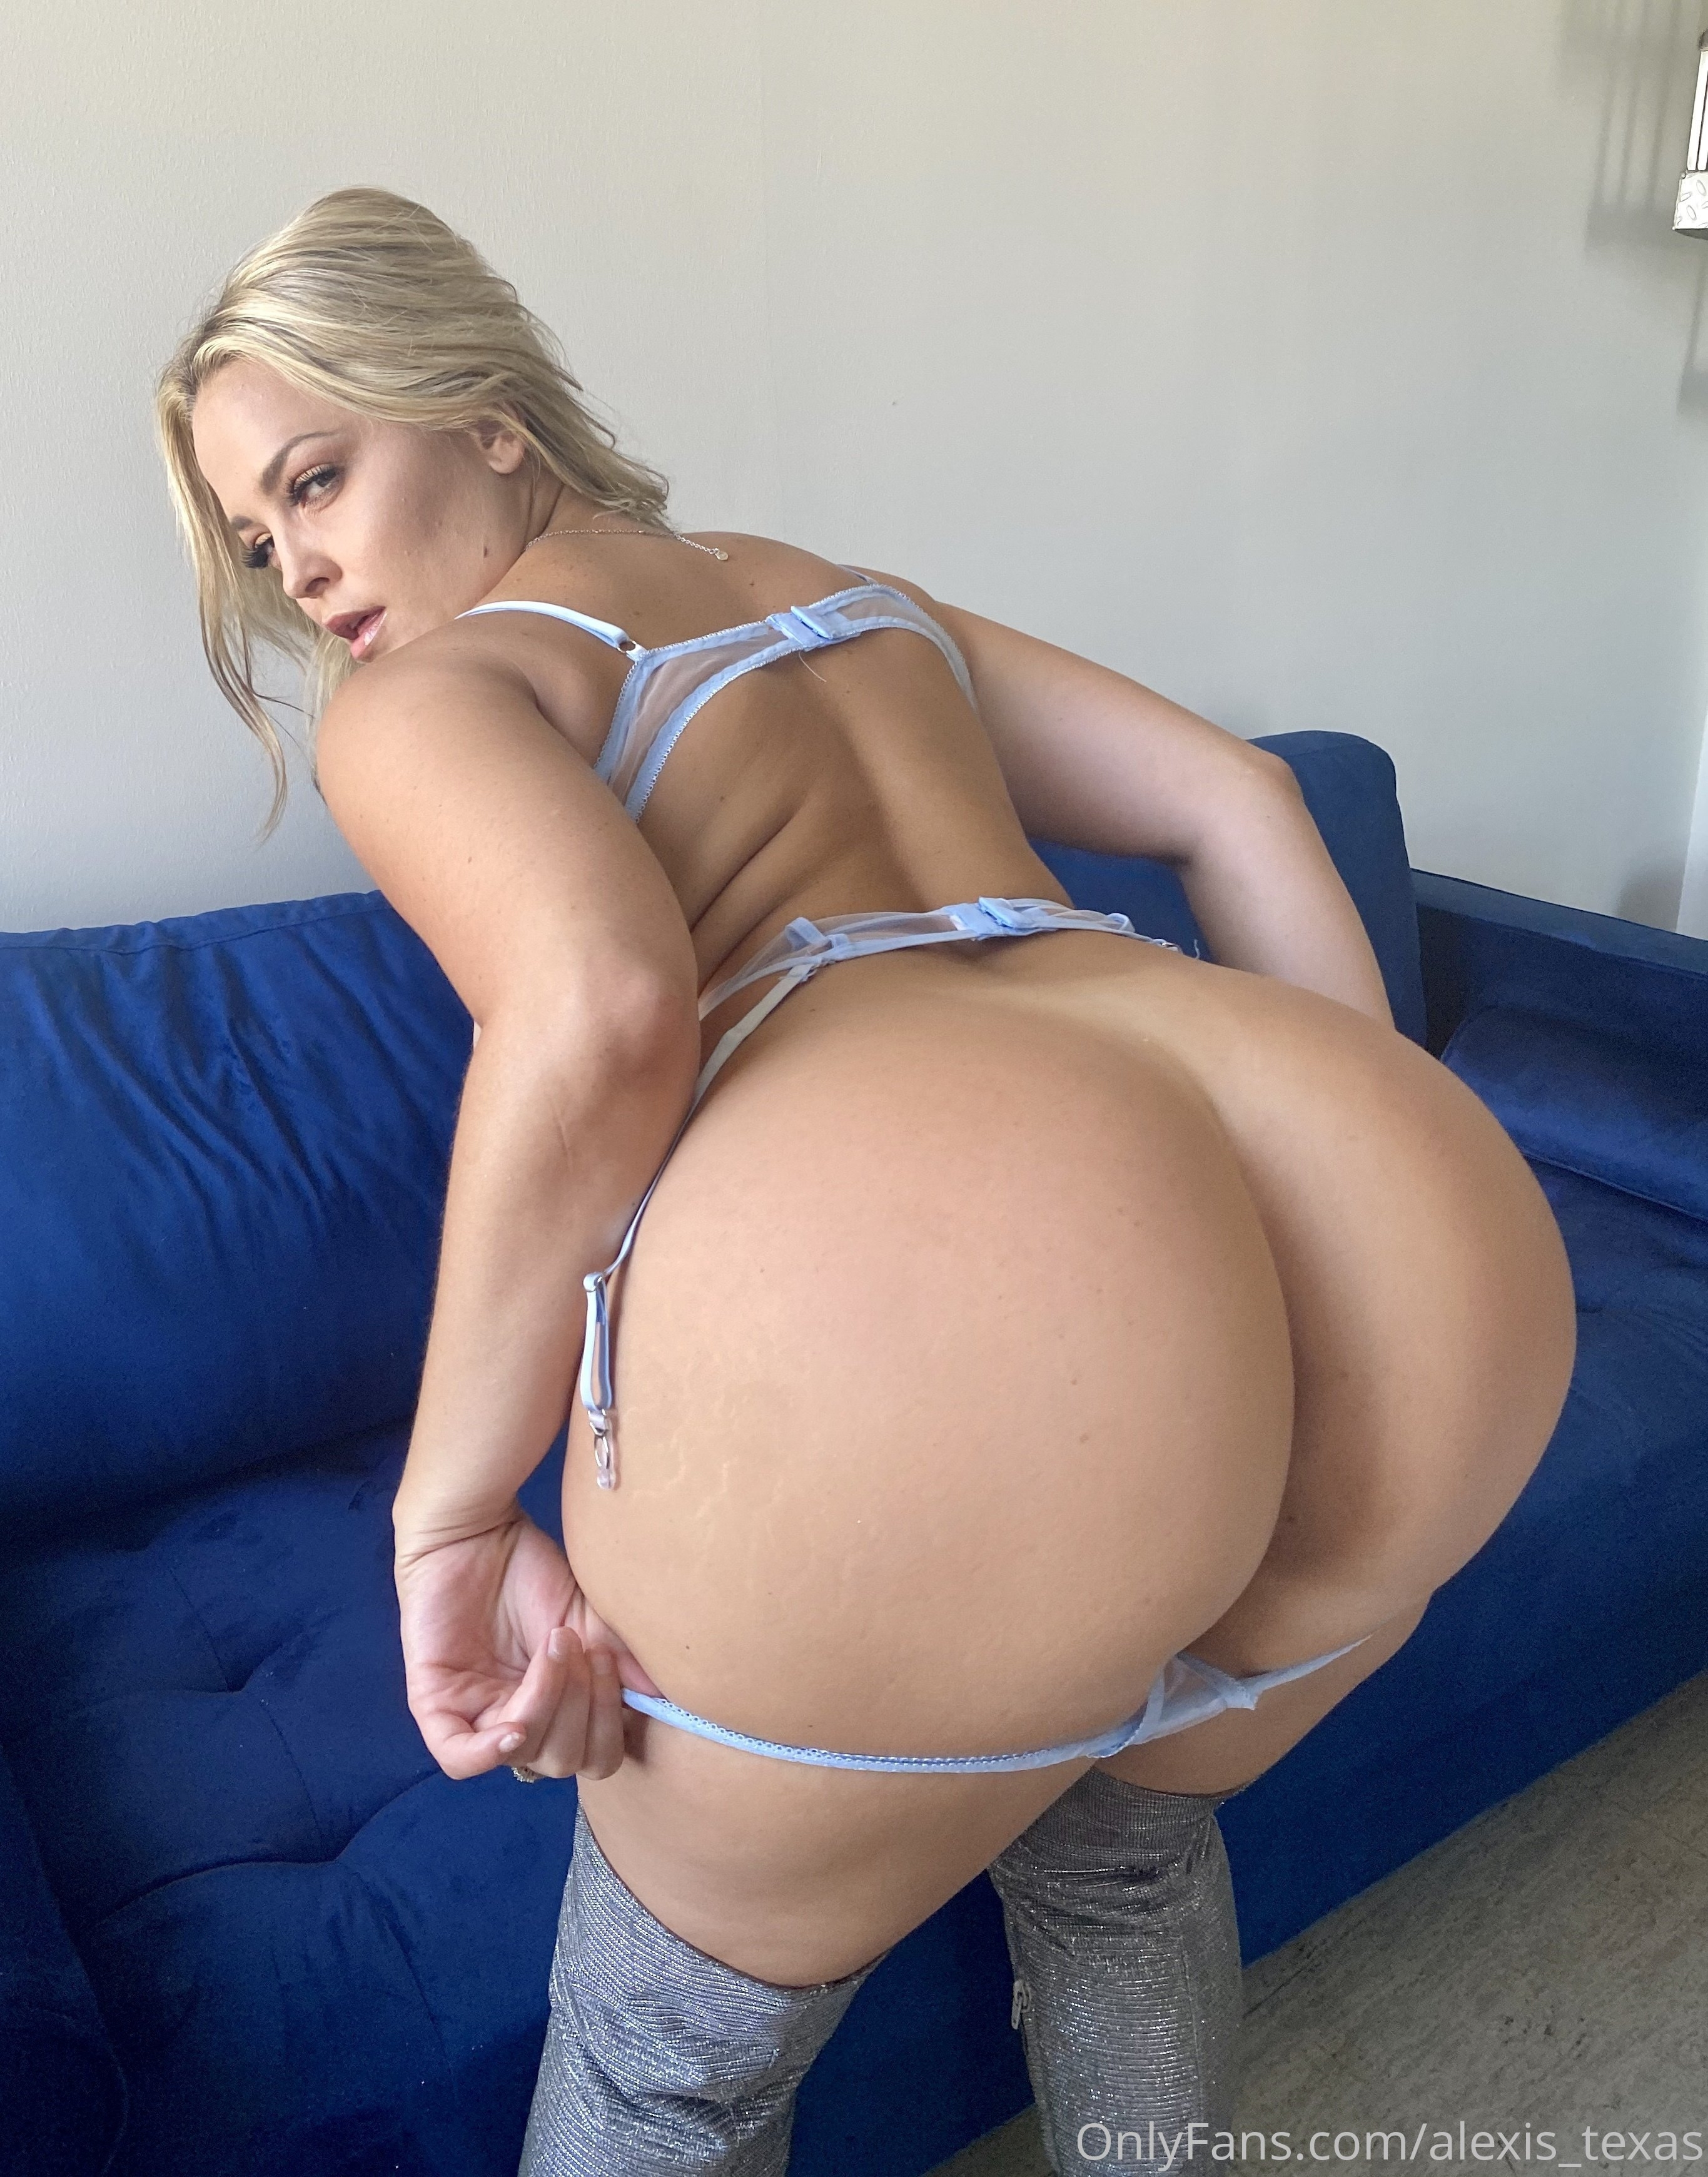 Alexis Texas Only Fans photo 30